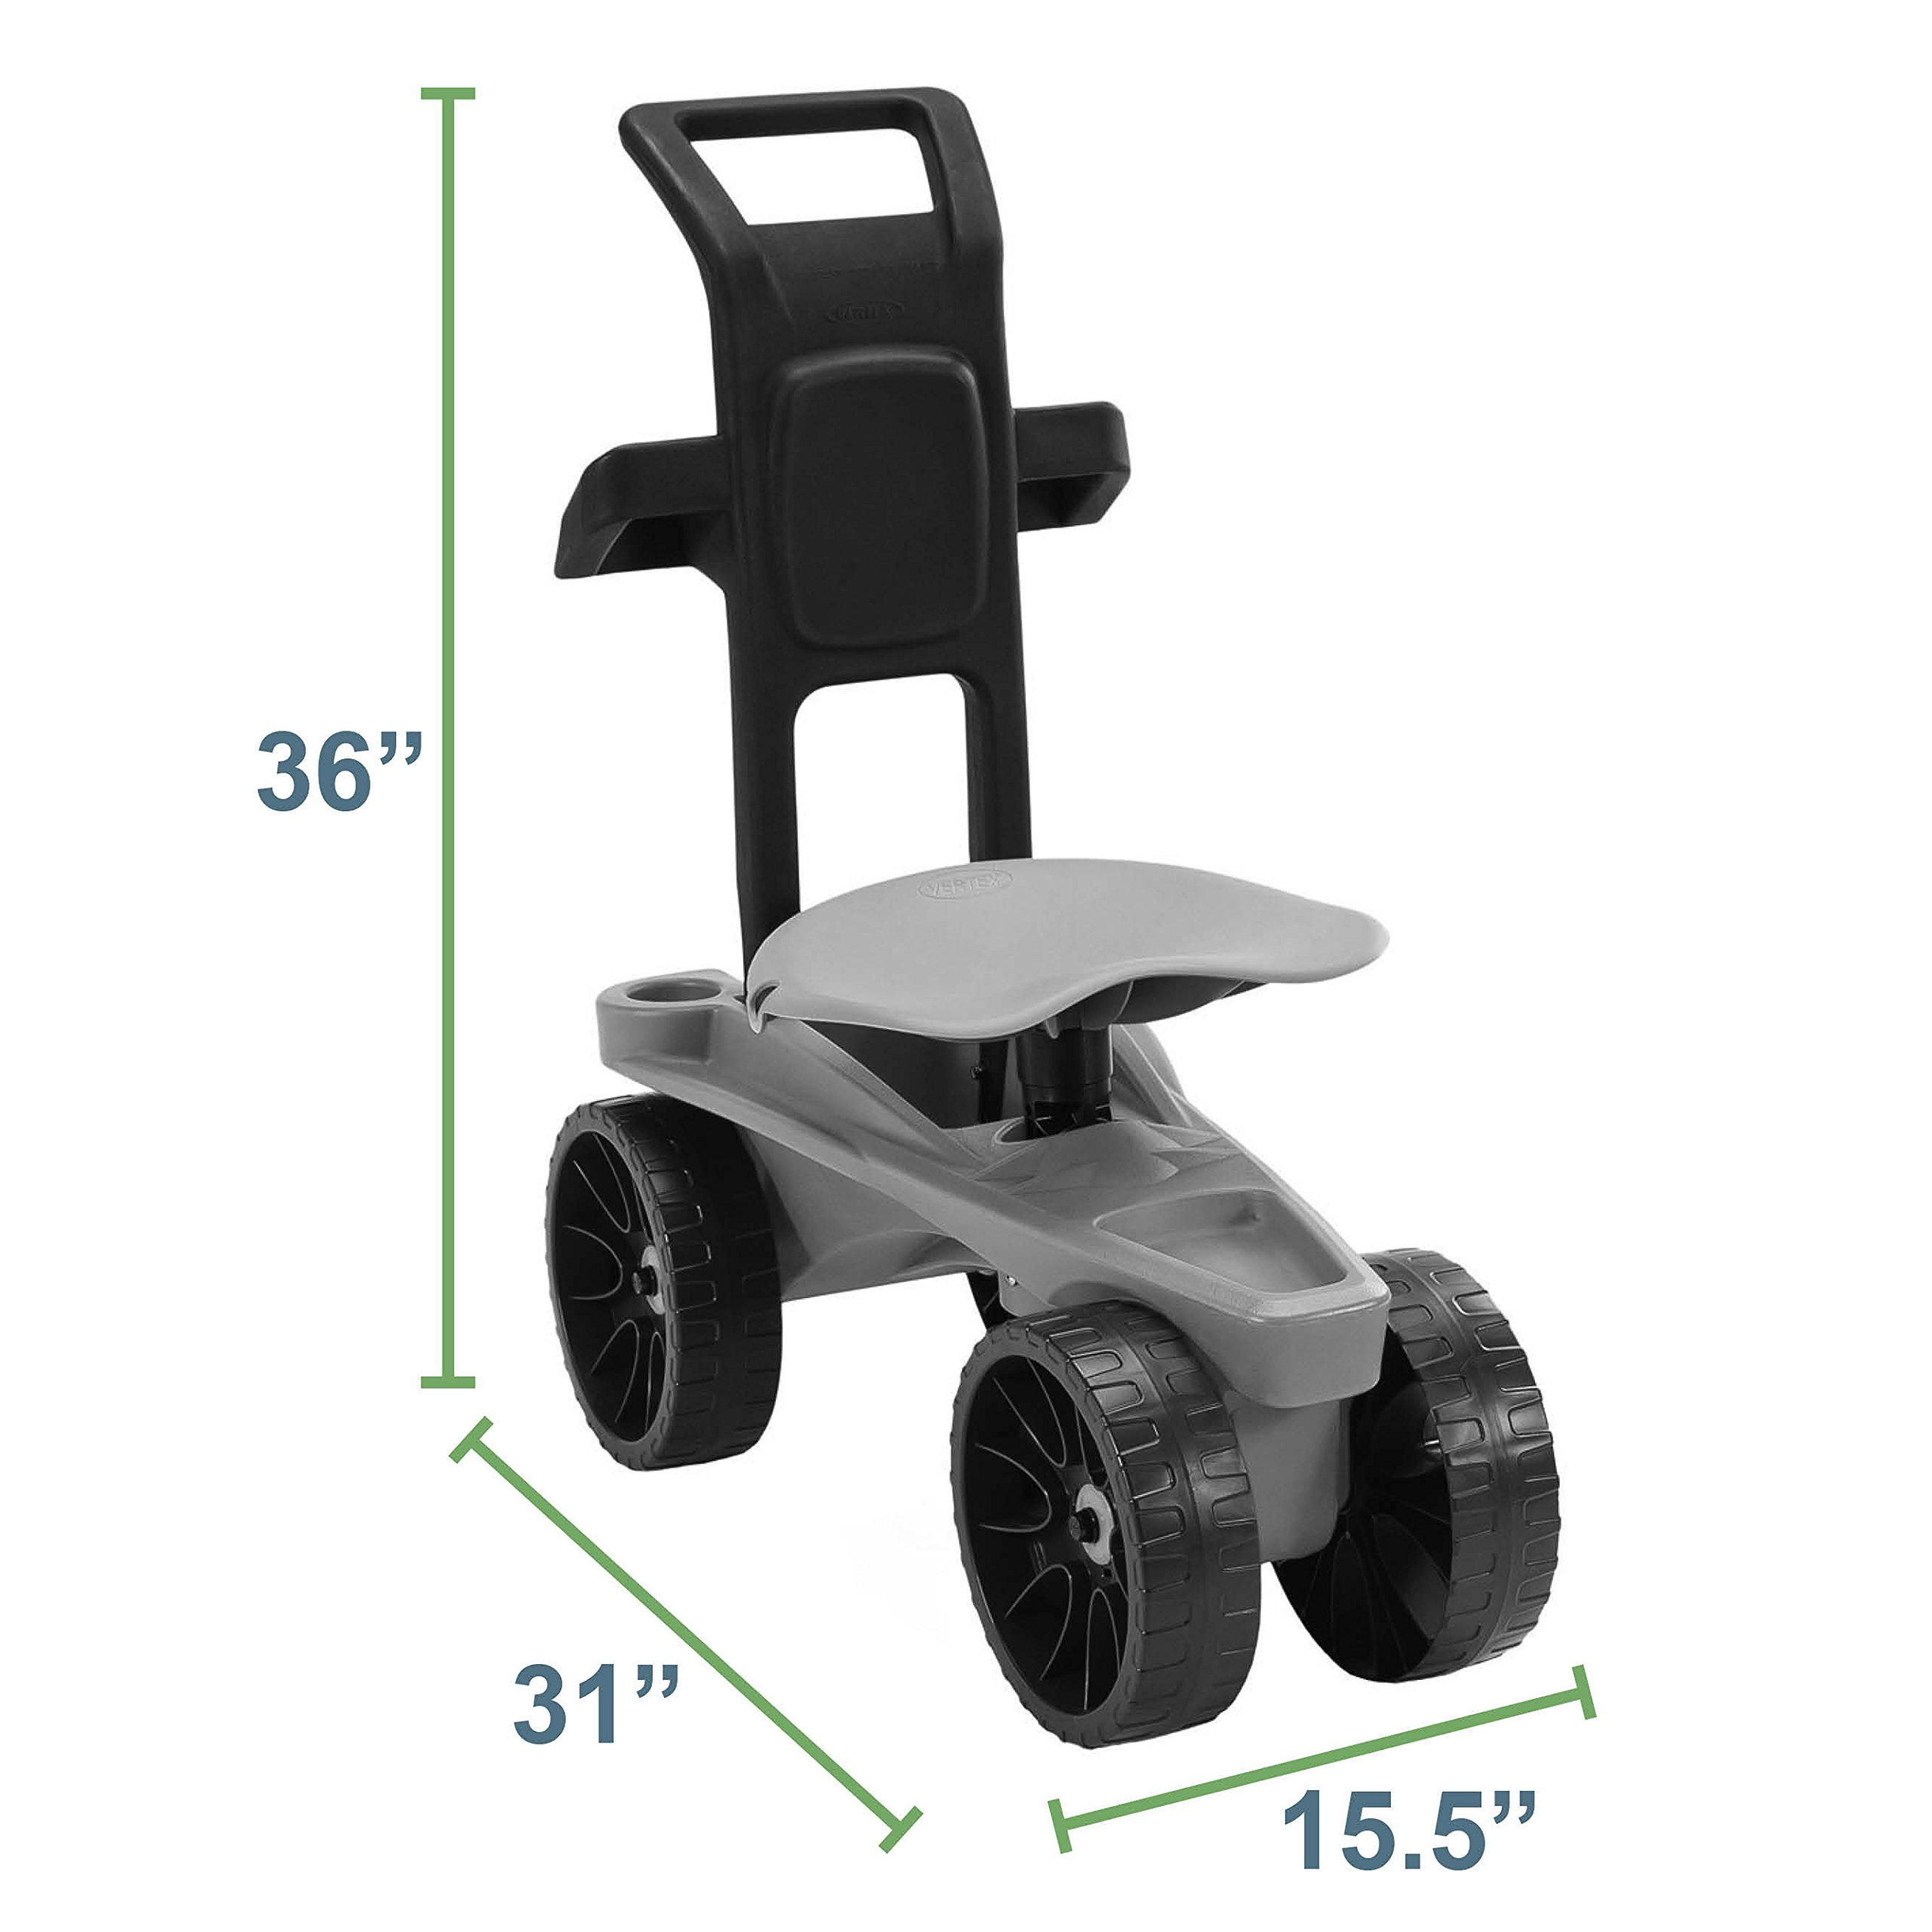 Easy Up Deluxe XTV Rolling Garden Seat and Scoot - Adjustable Swivel Seat, Heavy Duty Wheels, and Ergonomic Design To Assist Standing, Sitting, and Bending Over Made in the USA (Deluxe XTV Teal) by Vertex (Image #8)